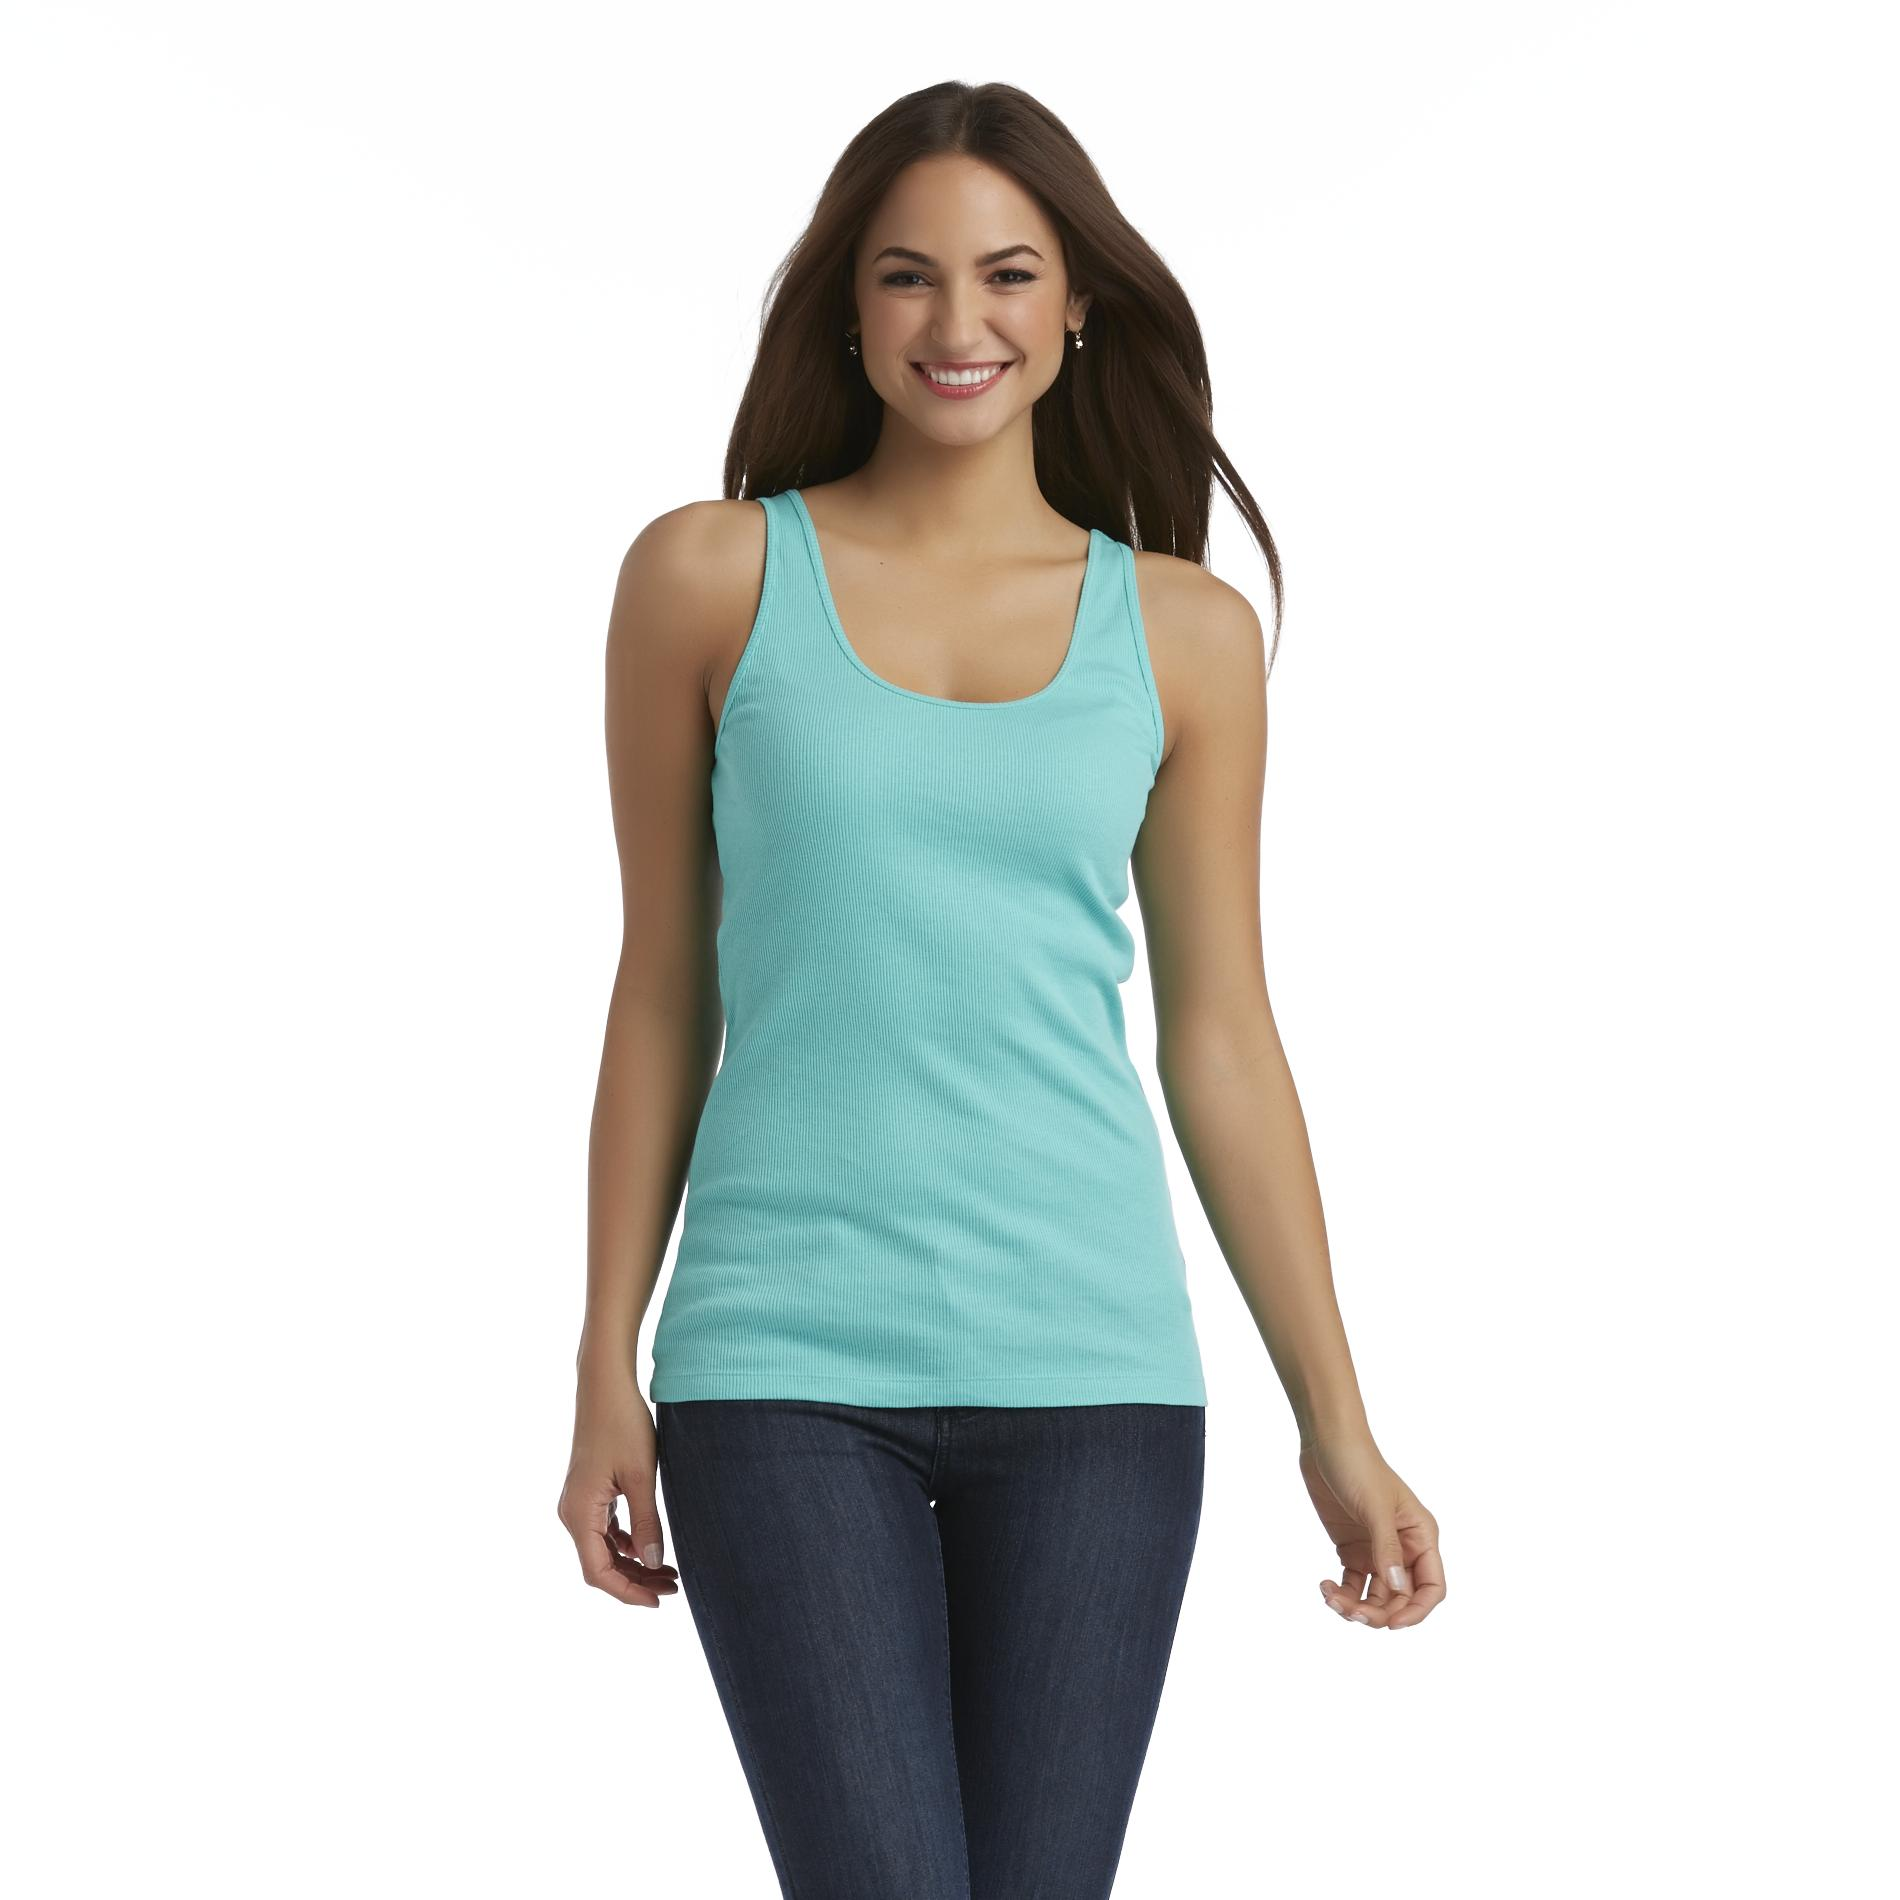 Joe by Joe Boxer Women's Tank Top at Sears.com